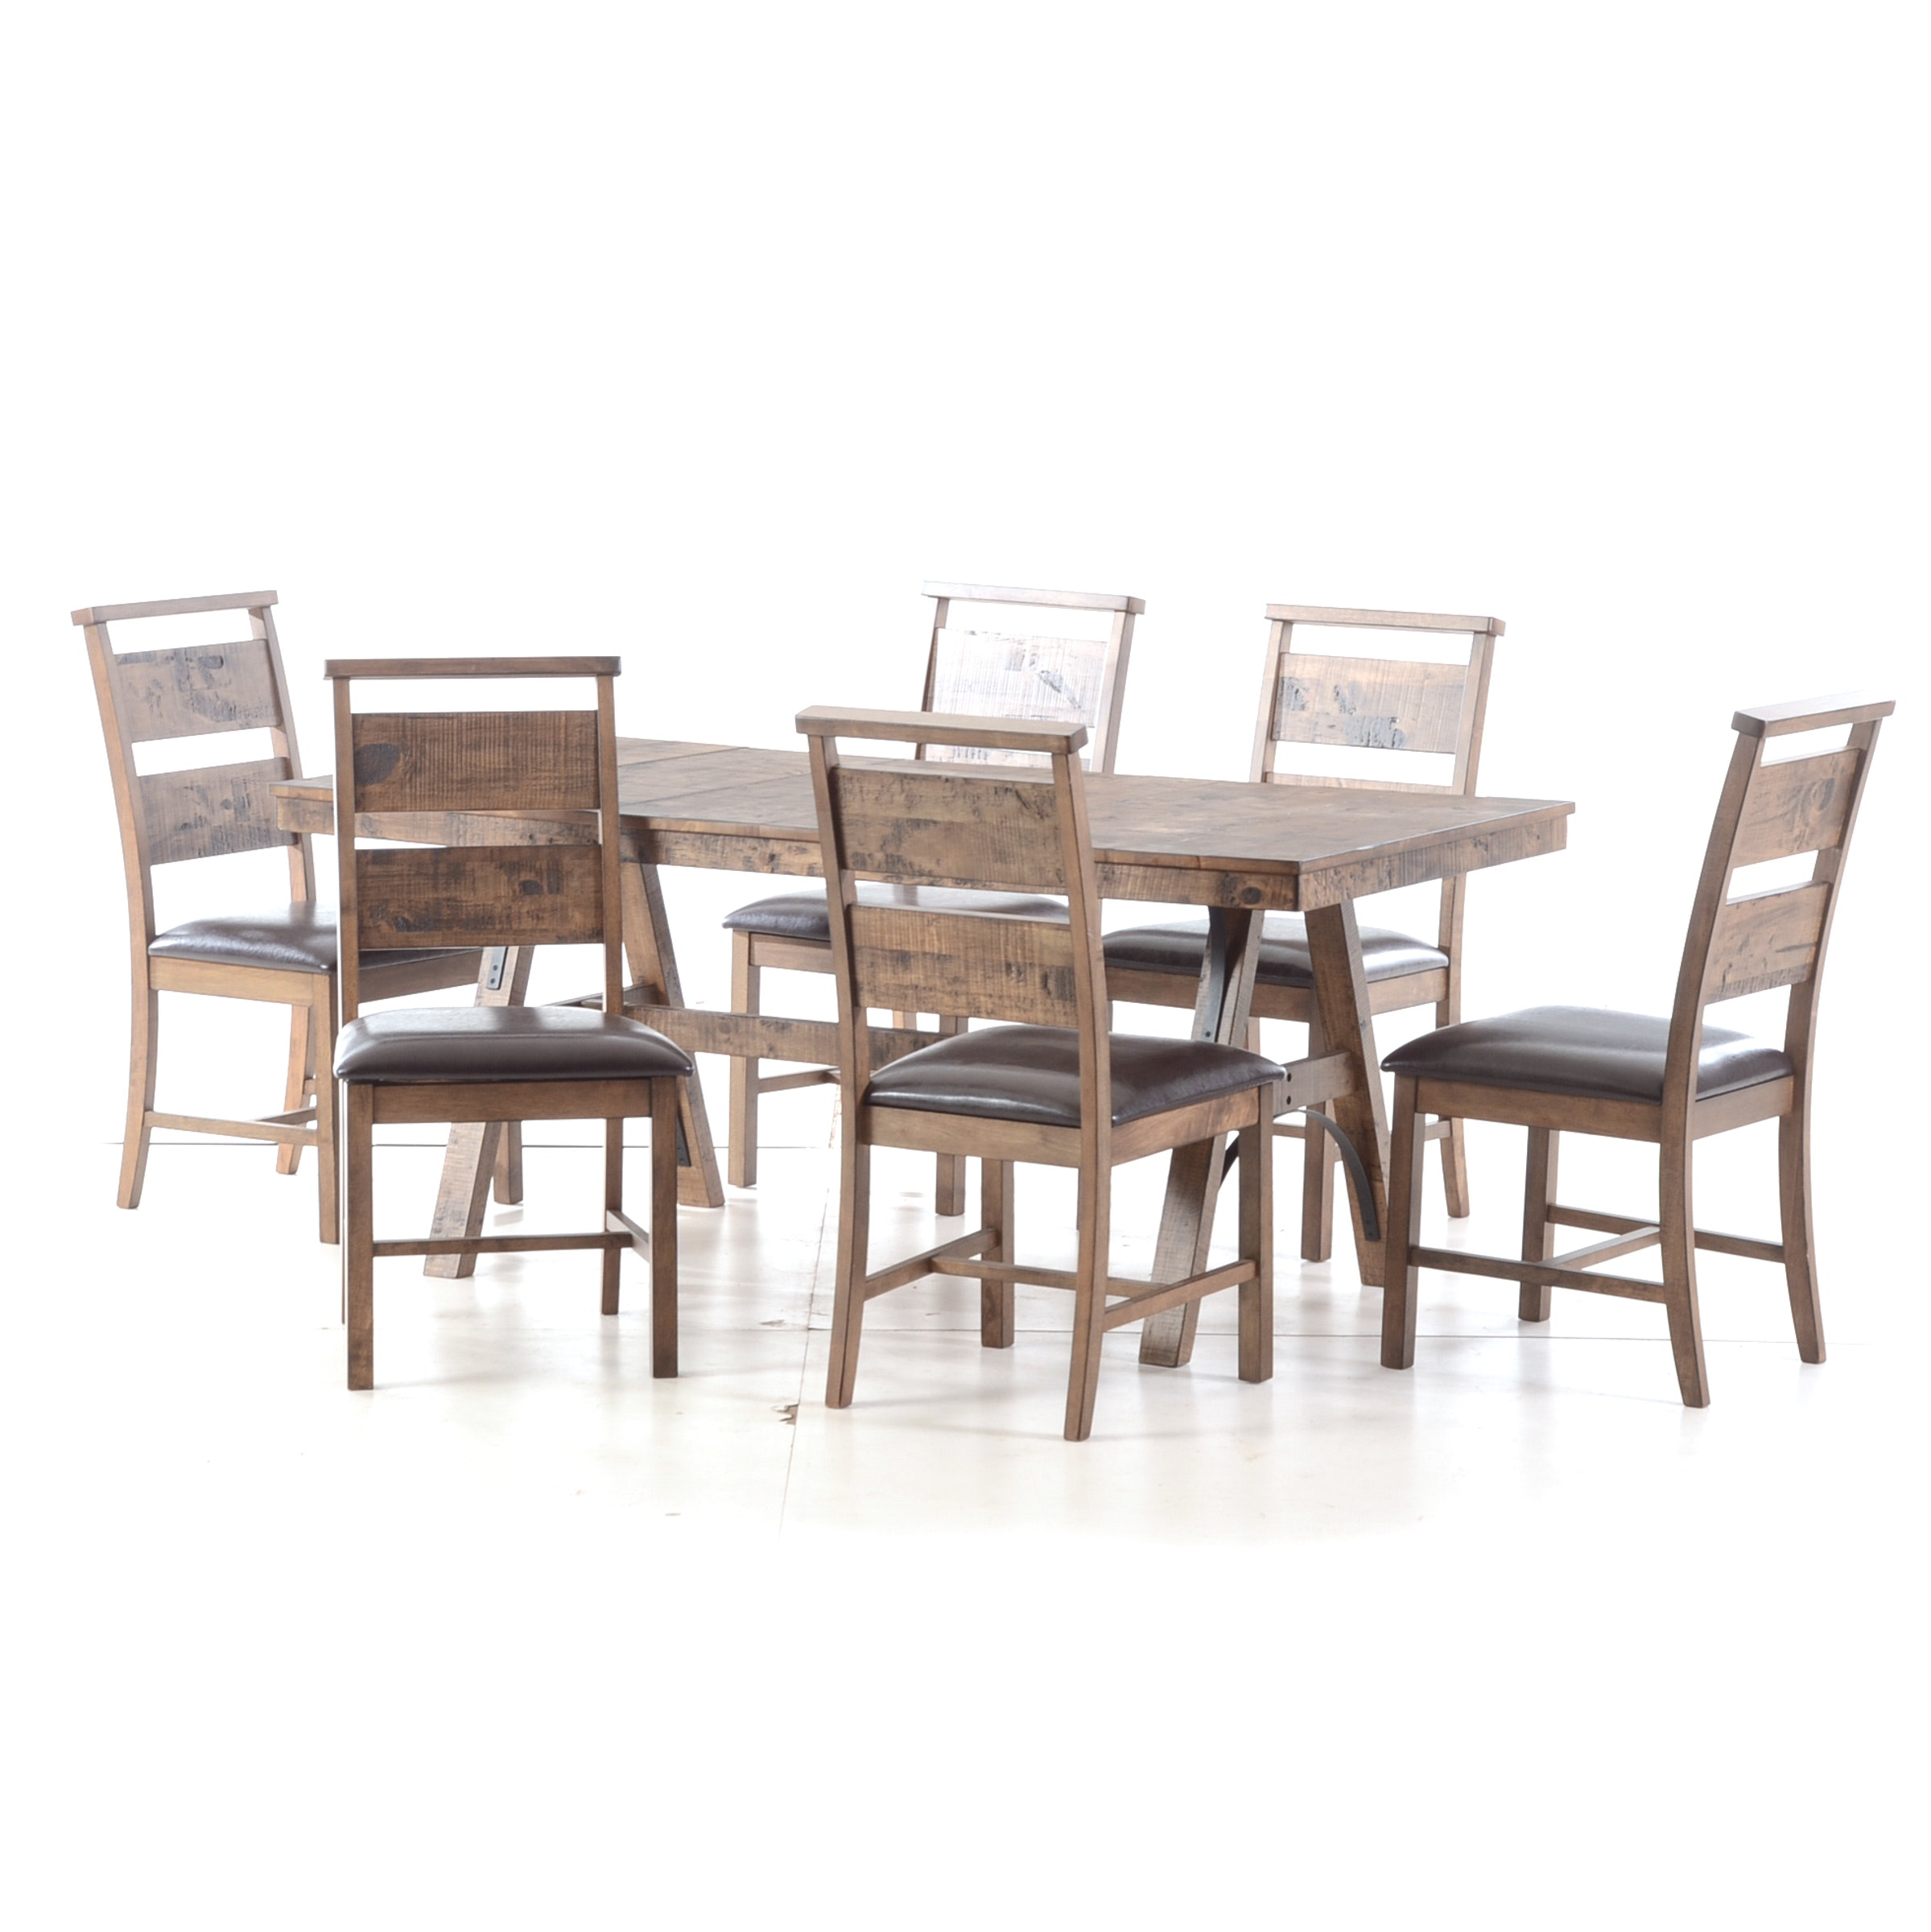 Contemporary Trestle Dining Table and Six Chairs